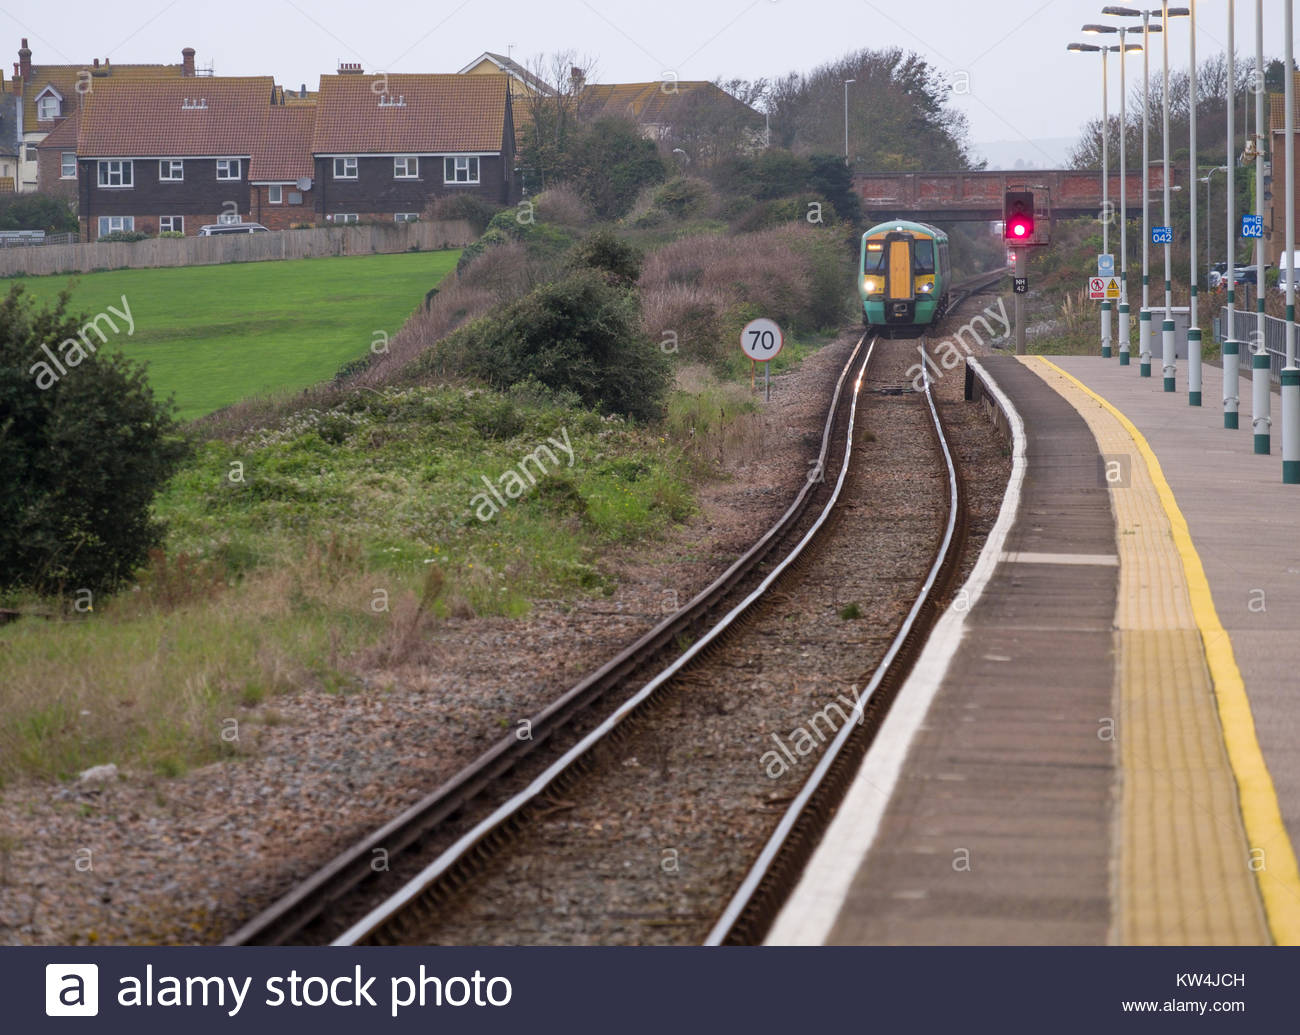 Class 377 Electrostar British electric multiple-unit train (EMU) built by Bombardier Transportation arriving at - Stock Image